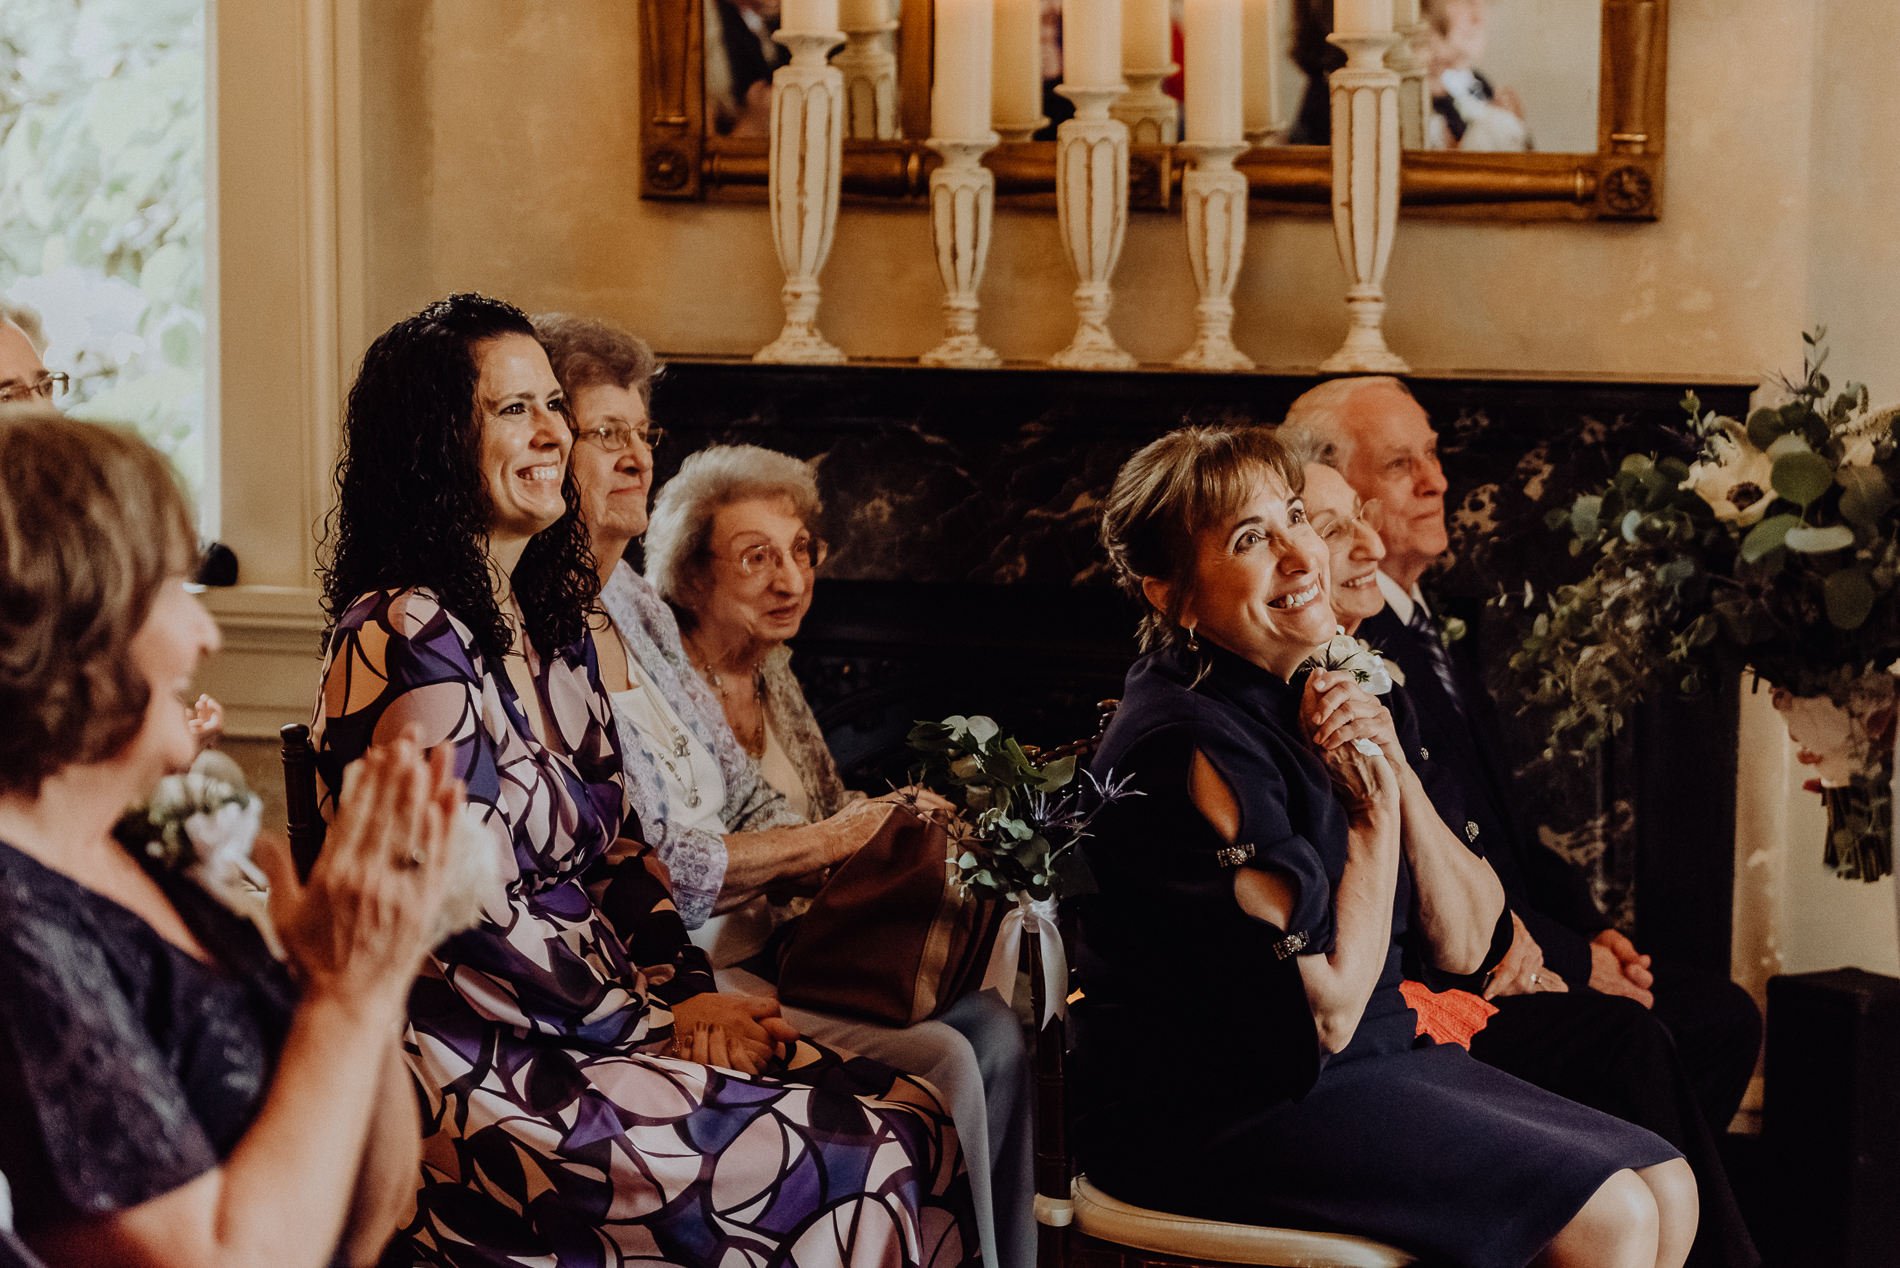 gabi and campbell east nashville wedding at riverwood mansion by wilde company-29.jpg